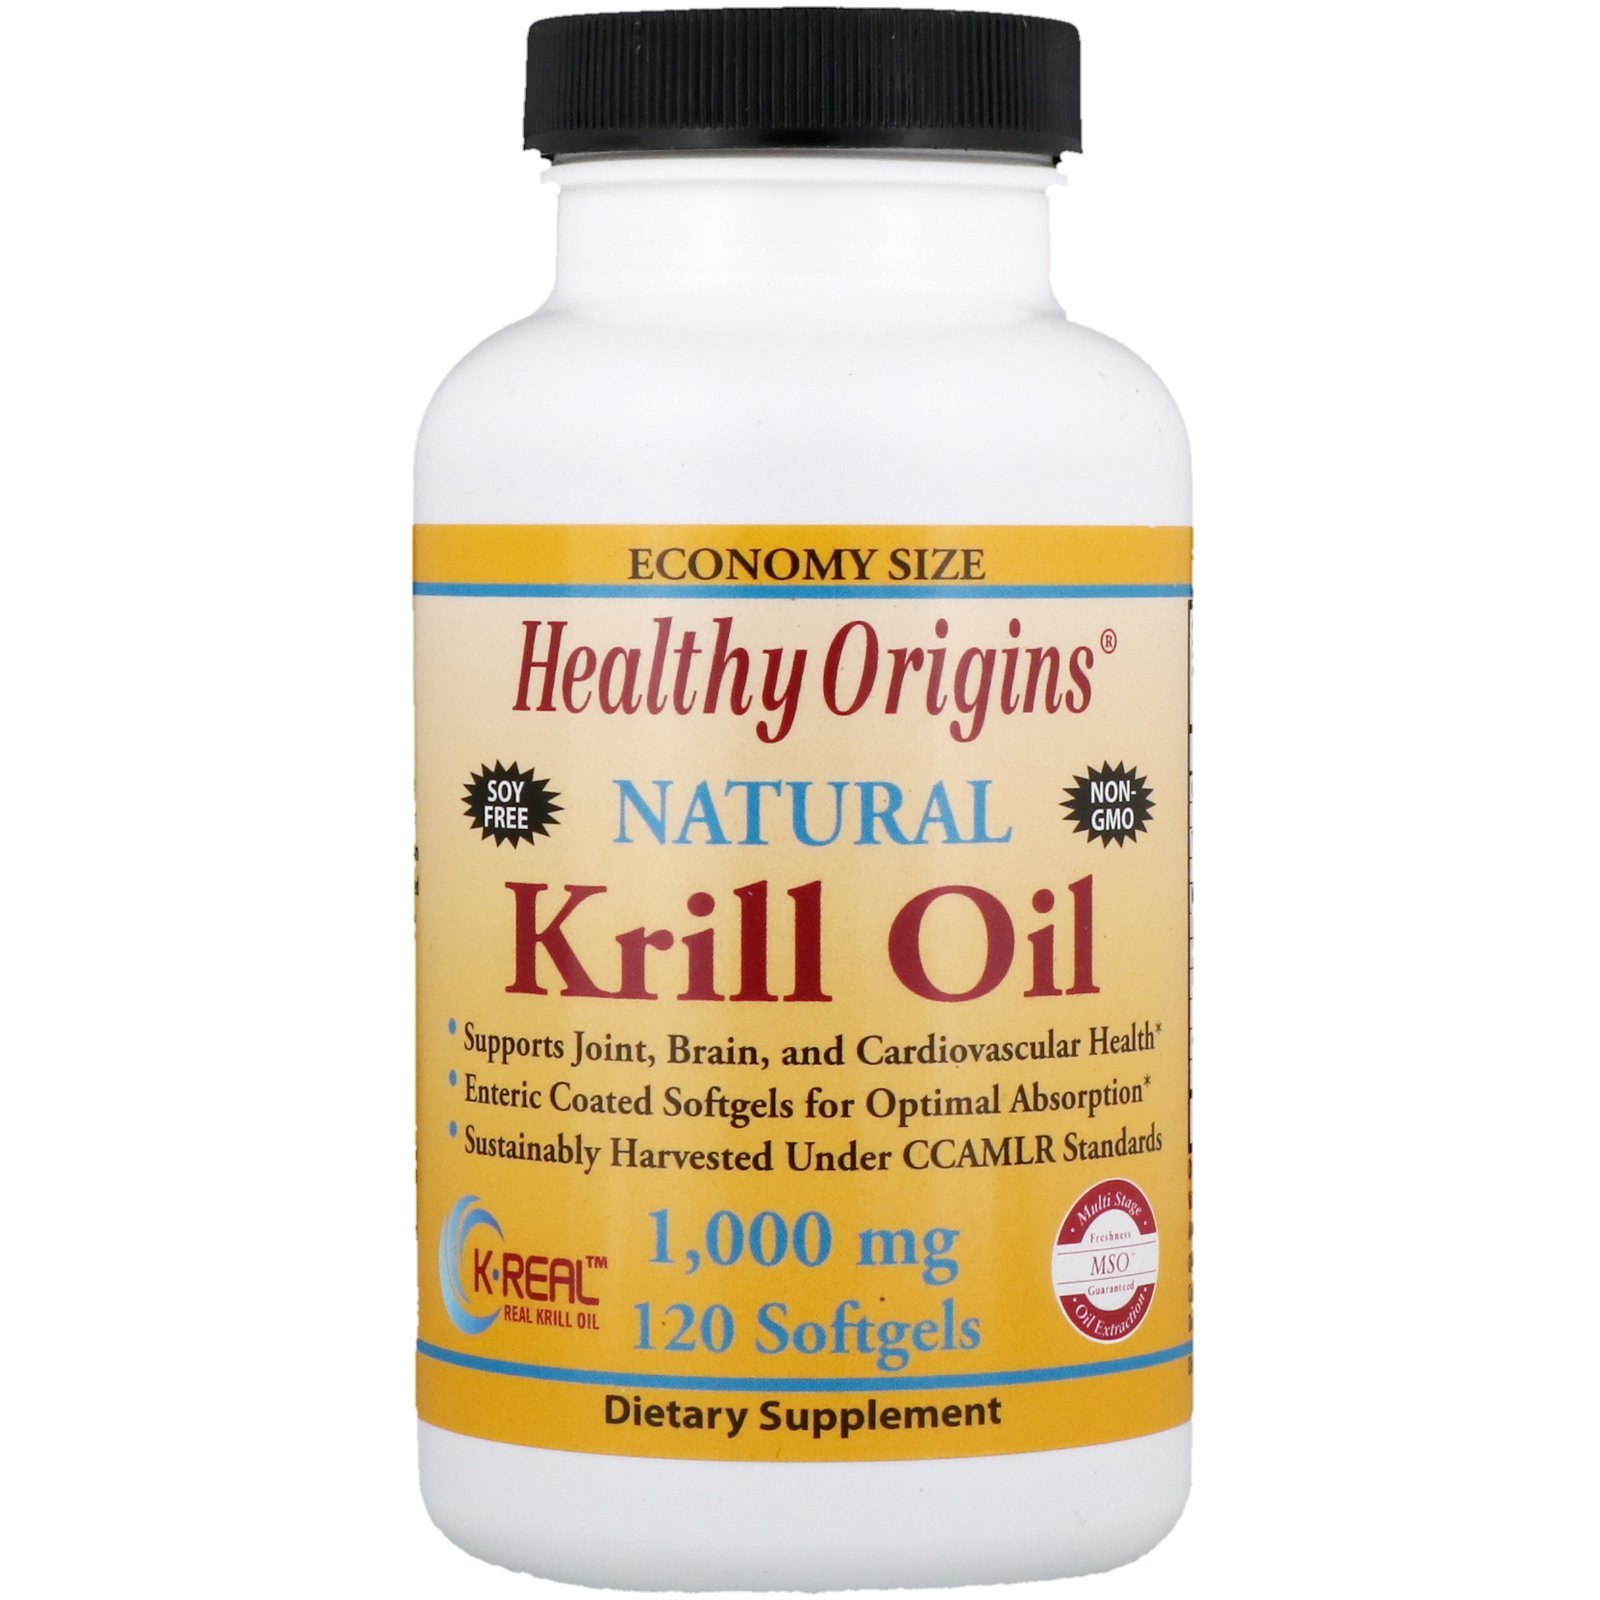 Масло криля, Healthy Origins, Krill Oil, Natural Vanilla Flavor, 1,000 mg, 120 Softgels